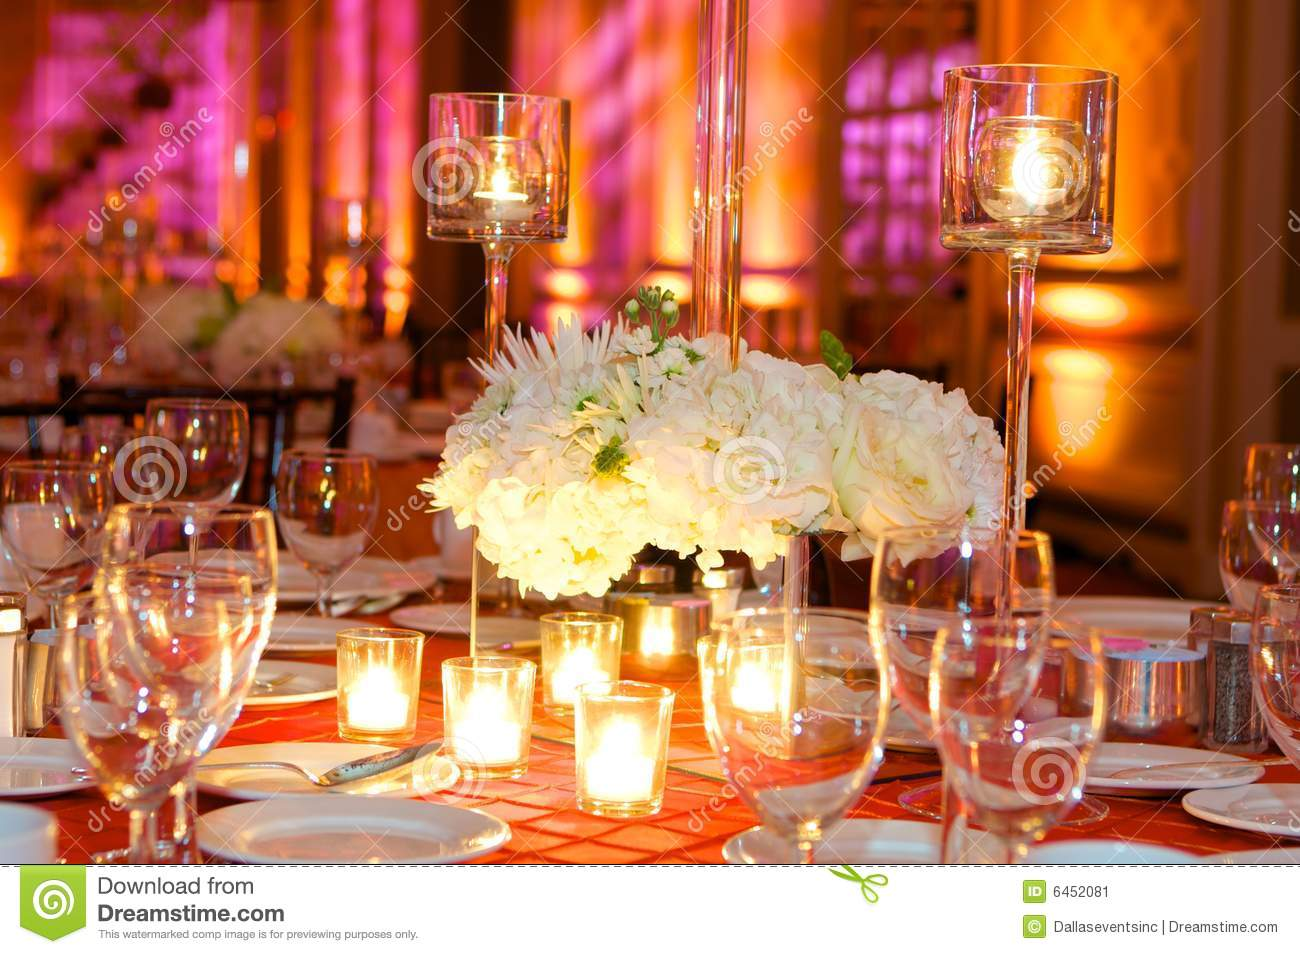 table setting at a luxury wedding reception stock image. Black Bedroom Furniture Sets. Home Design Ideas